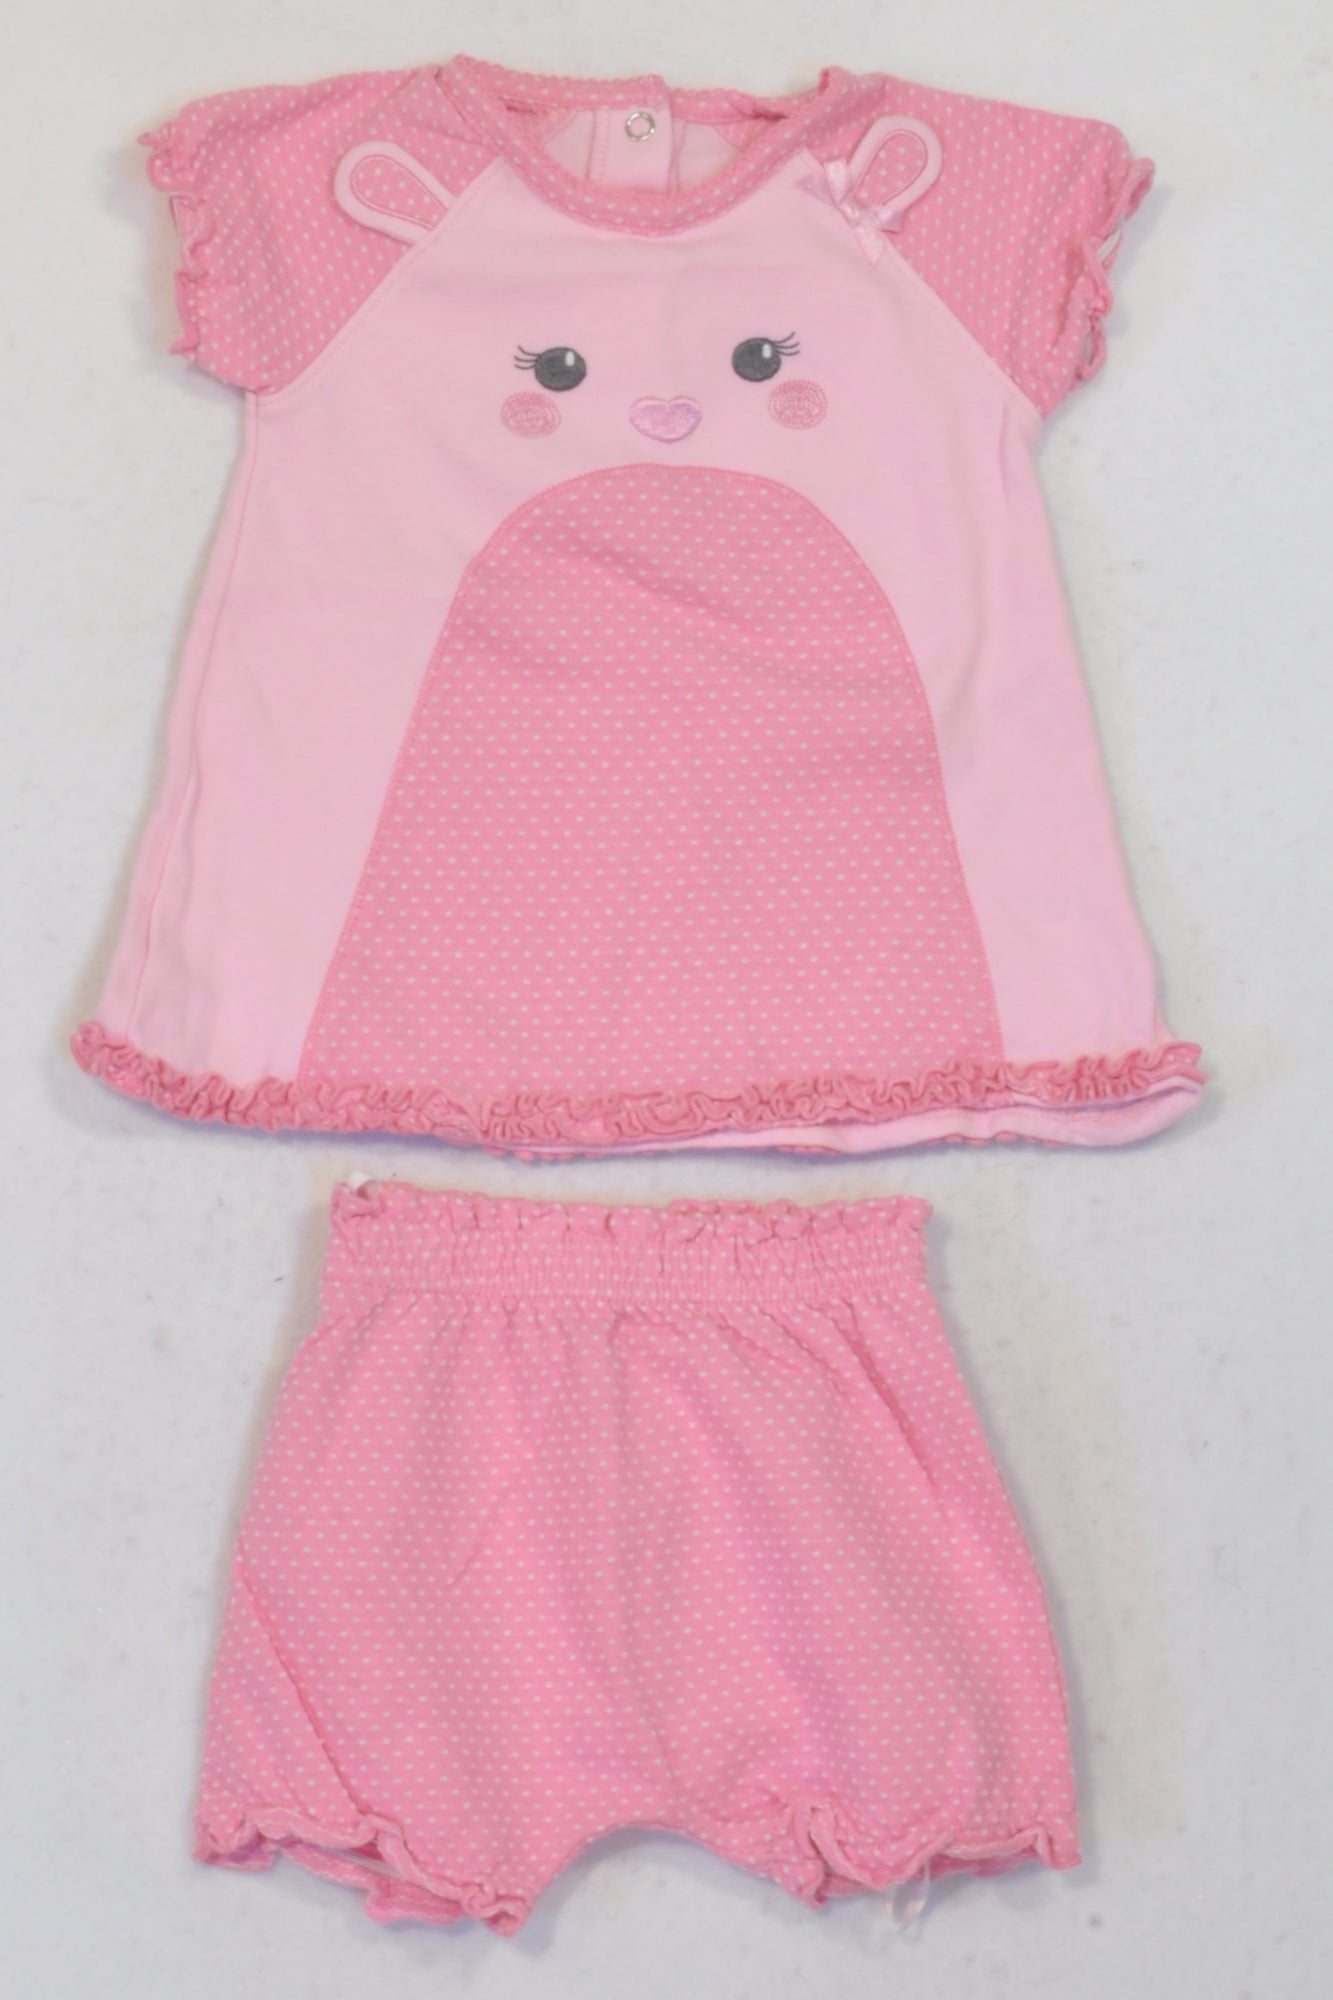 Woolworths Rose Pink Textured Dress & Harem Shorts Outfit Girls 3 6